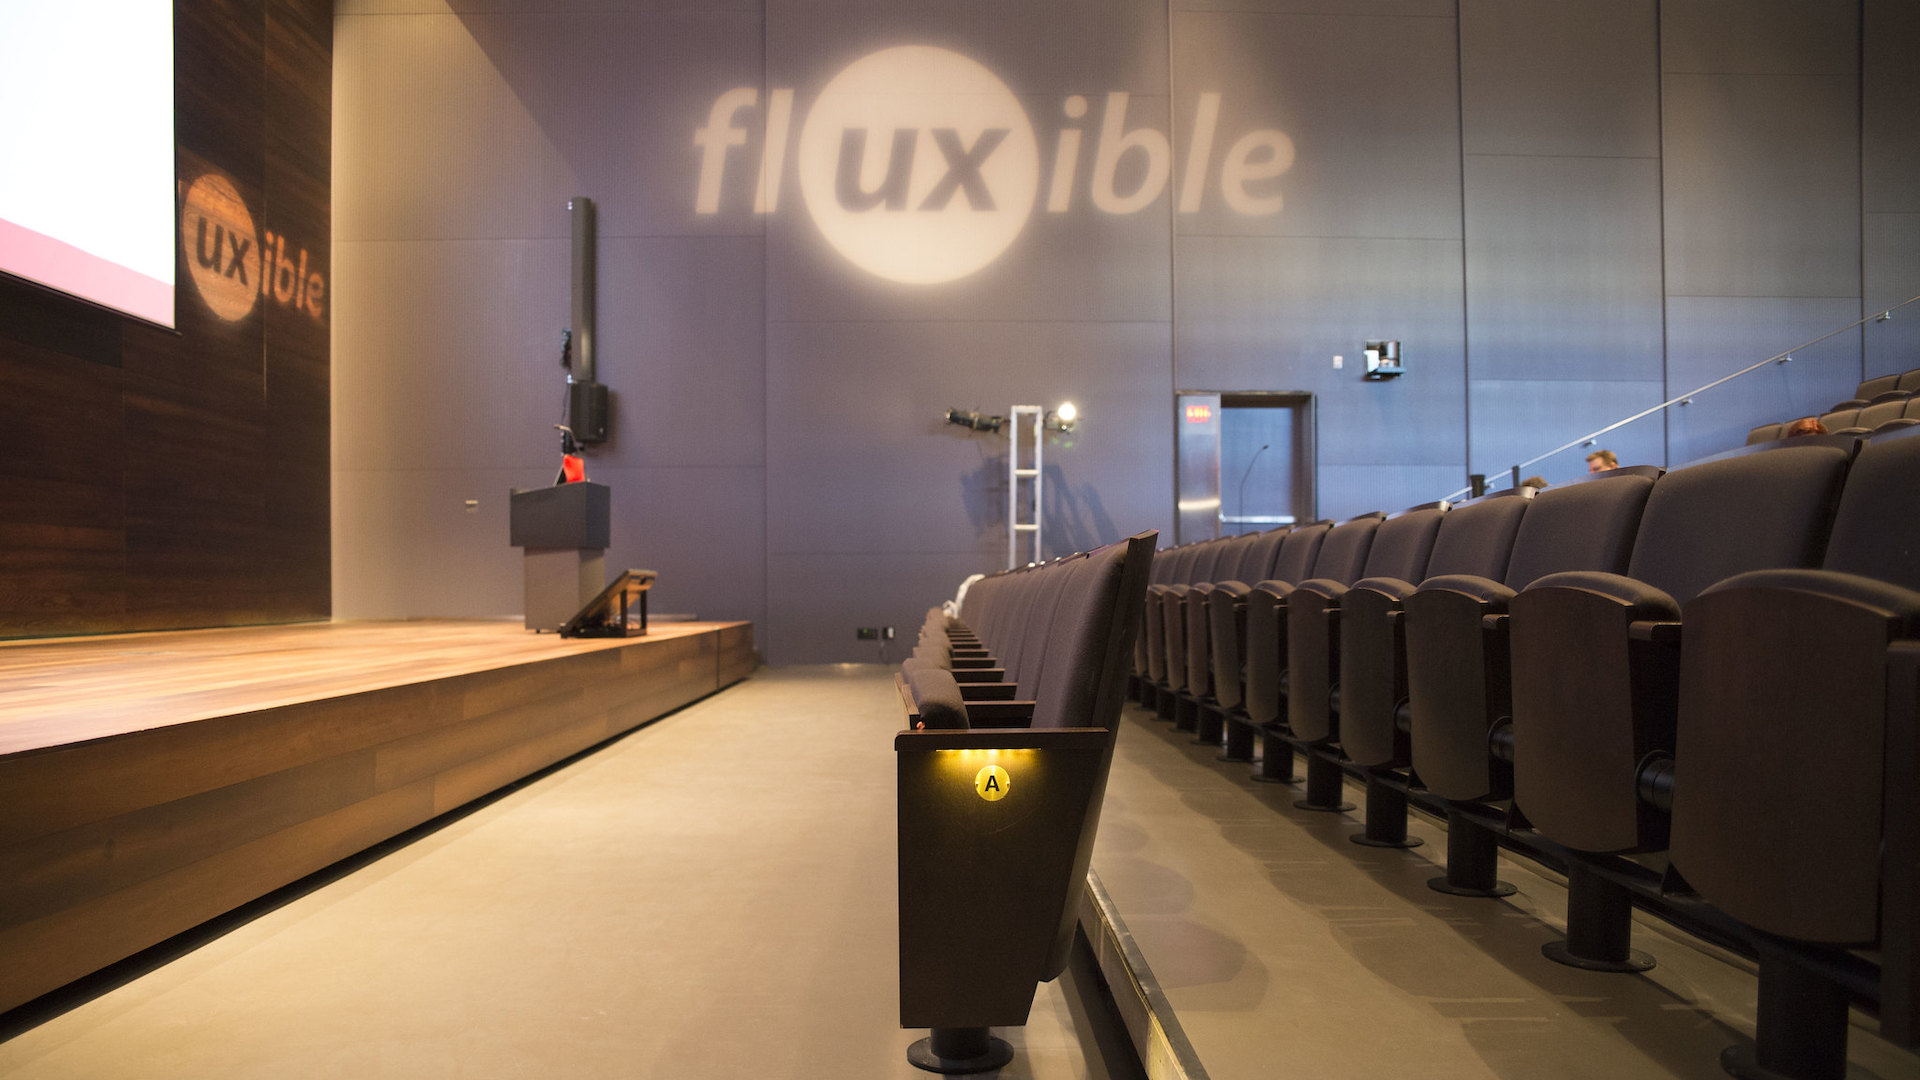 Empty rows of seats in a theatre with the Fluxible logo cast on a grey wall.